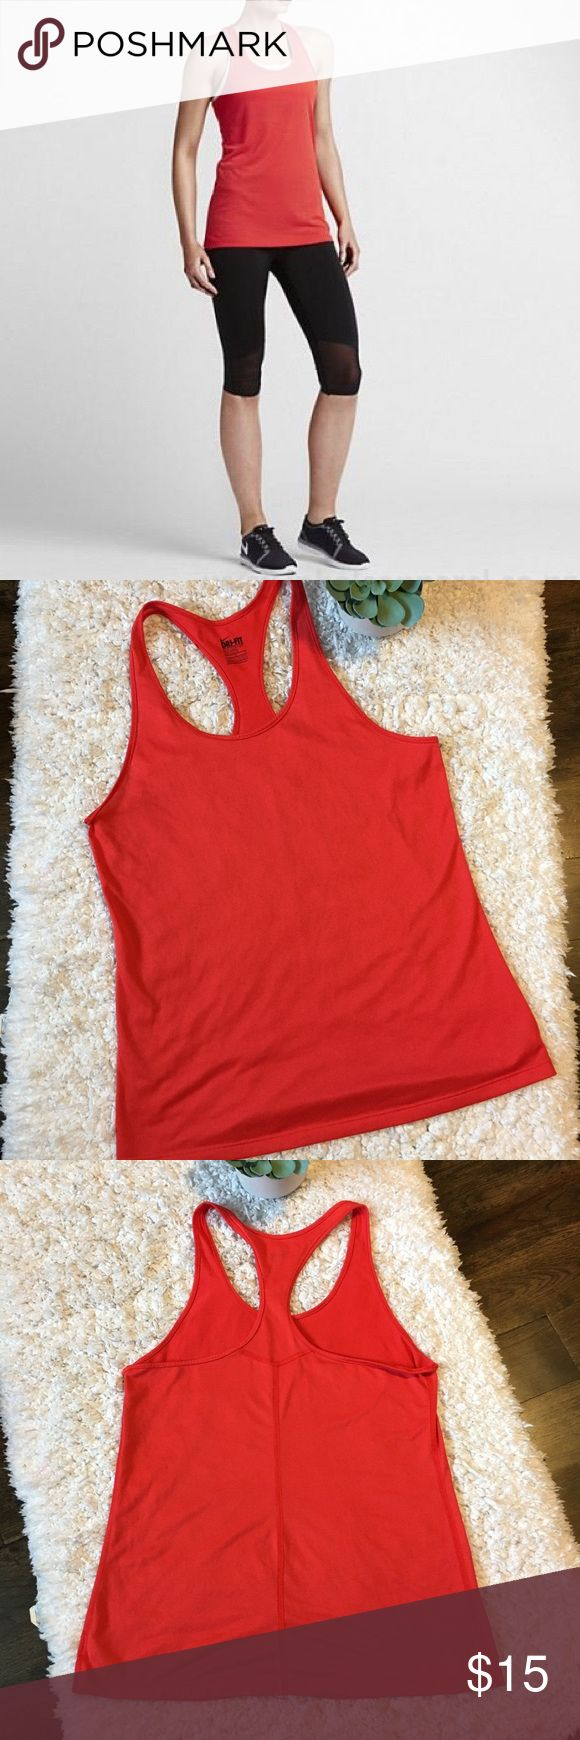 Nike Balance Tank LT Crimson racer back size L Women's Nike Balance Tank in Lt. Crimson color.  This racer back tank is in great condition.  Dry fit fabric keeps you dry and comfortable. Slim fit 100% Polyester  Size Large Approximate measurements on attached photos Nike Tops Tank Tops